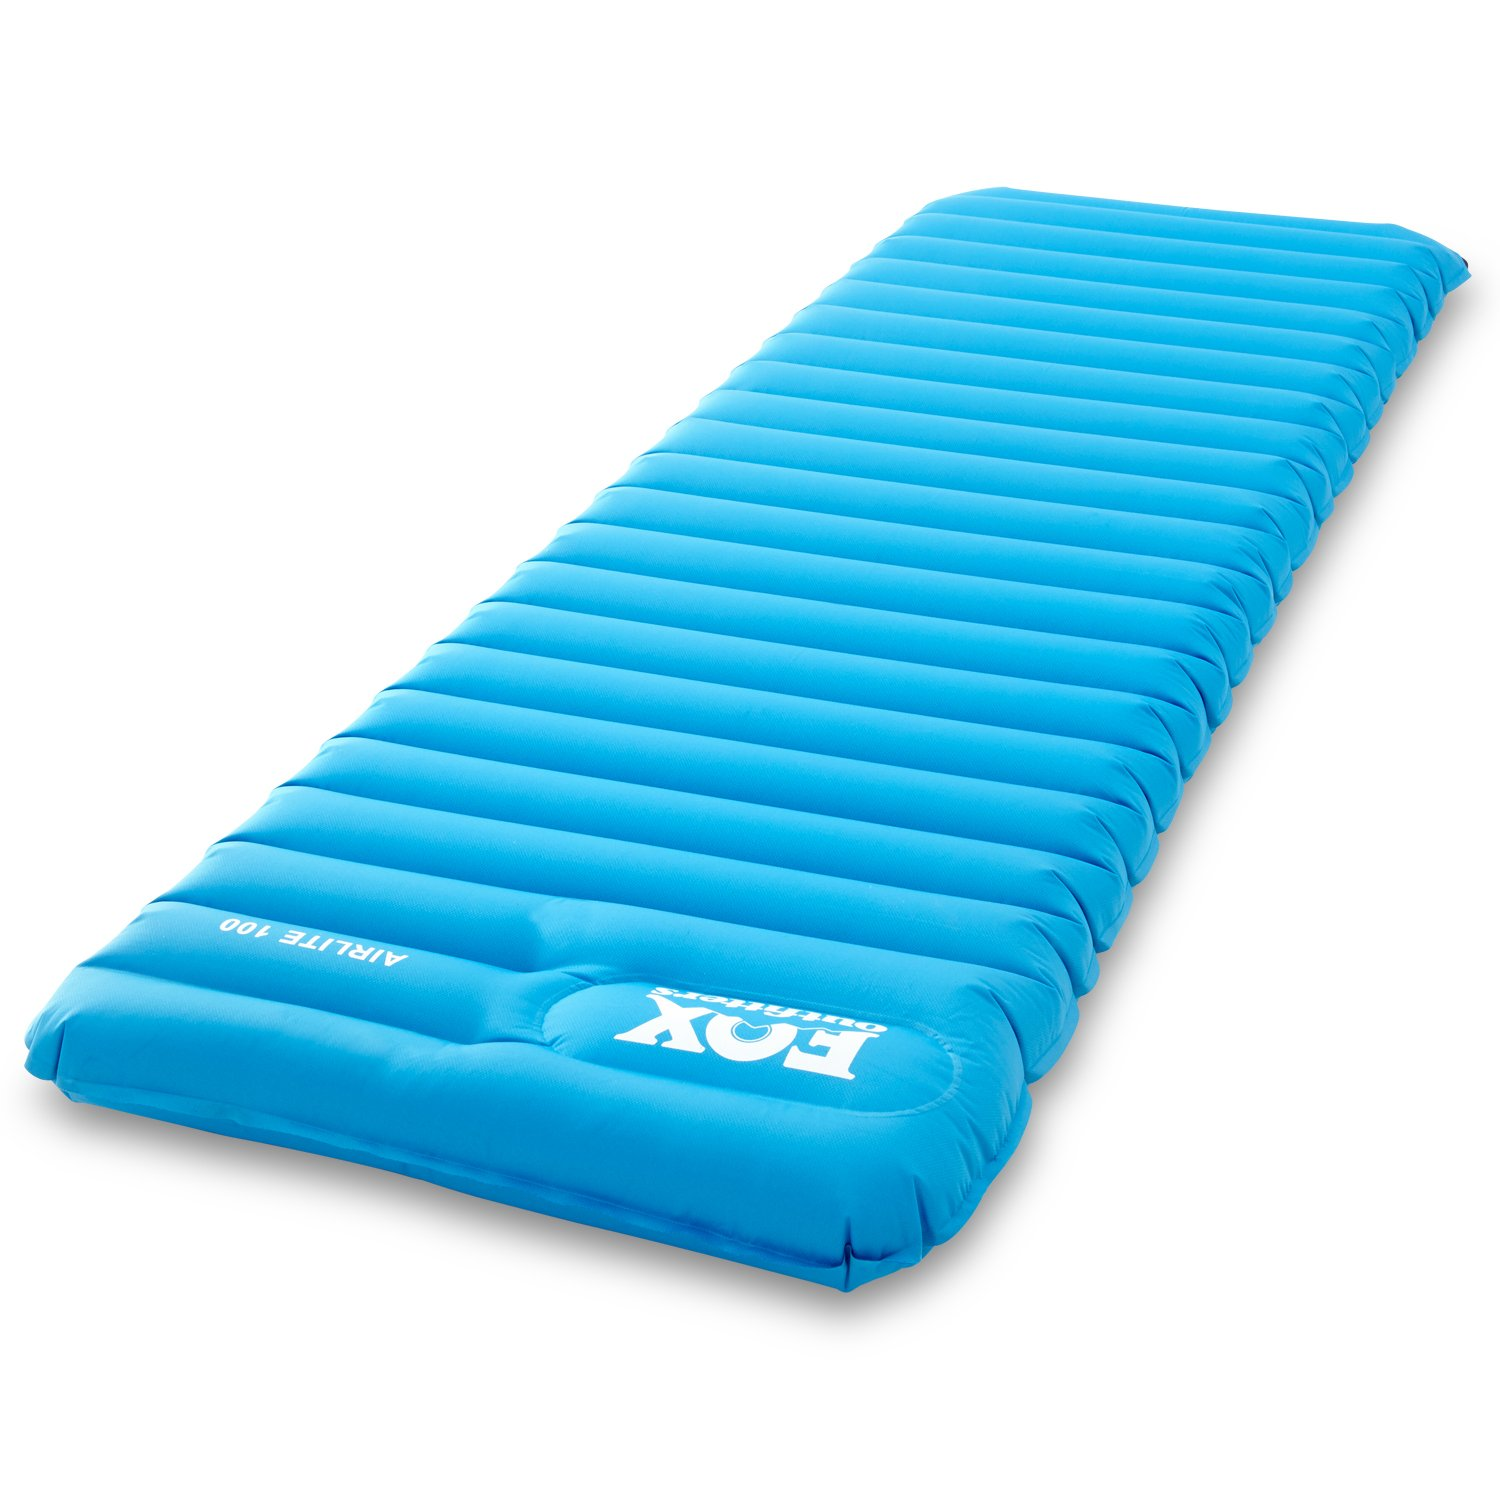 Small Air Mattress For Camping Compare Sizes Sleeping